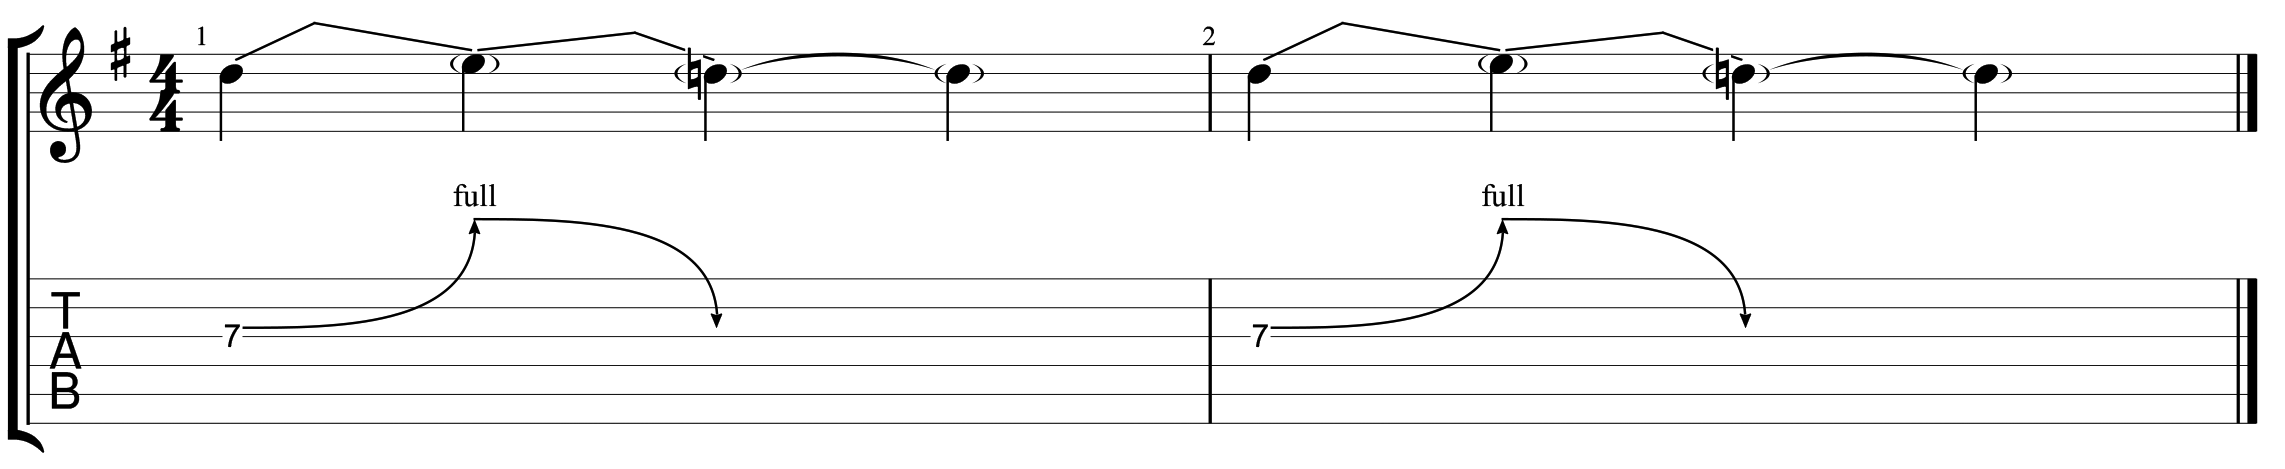 How to read guitar tab 14